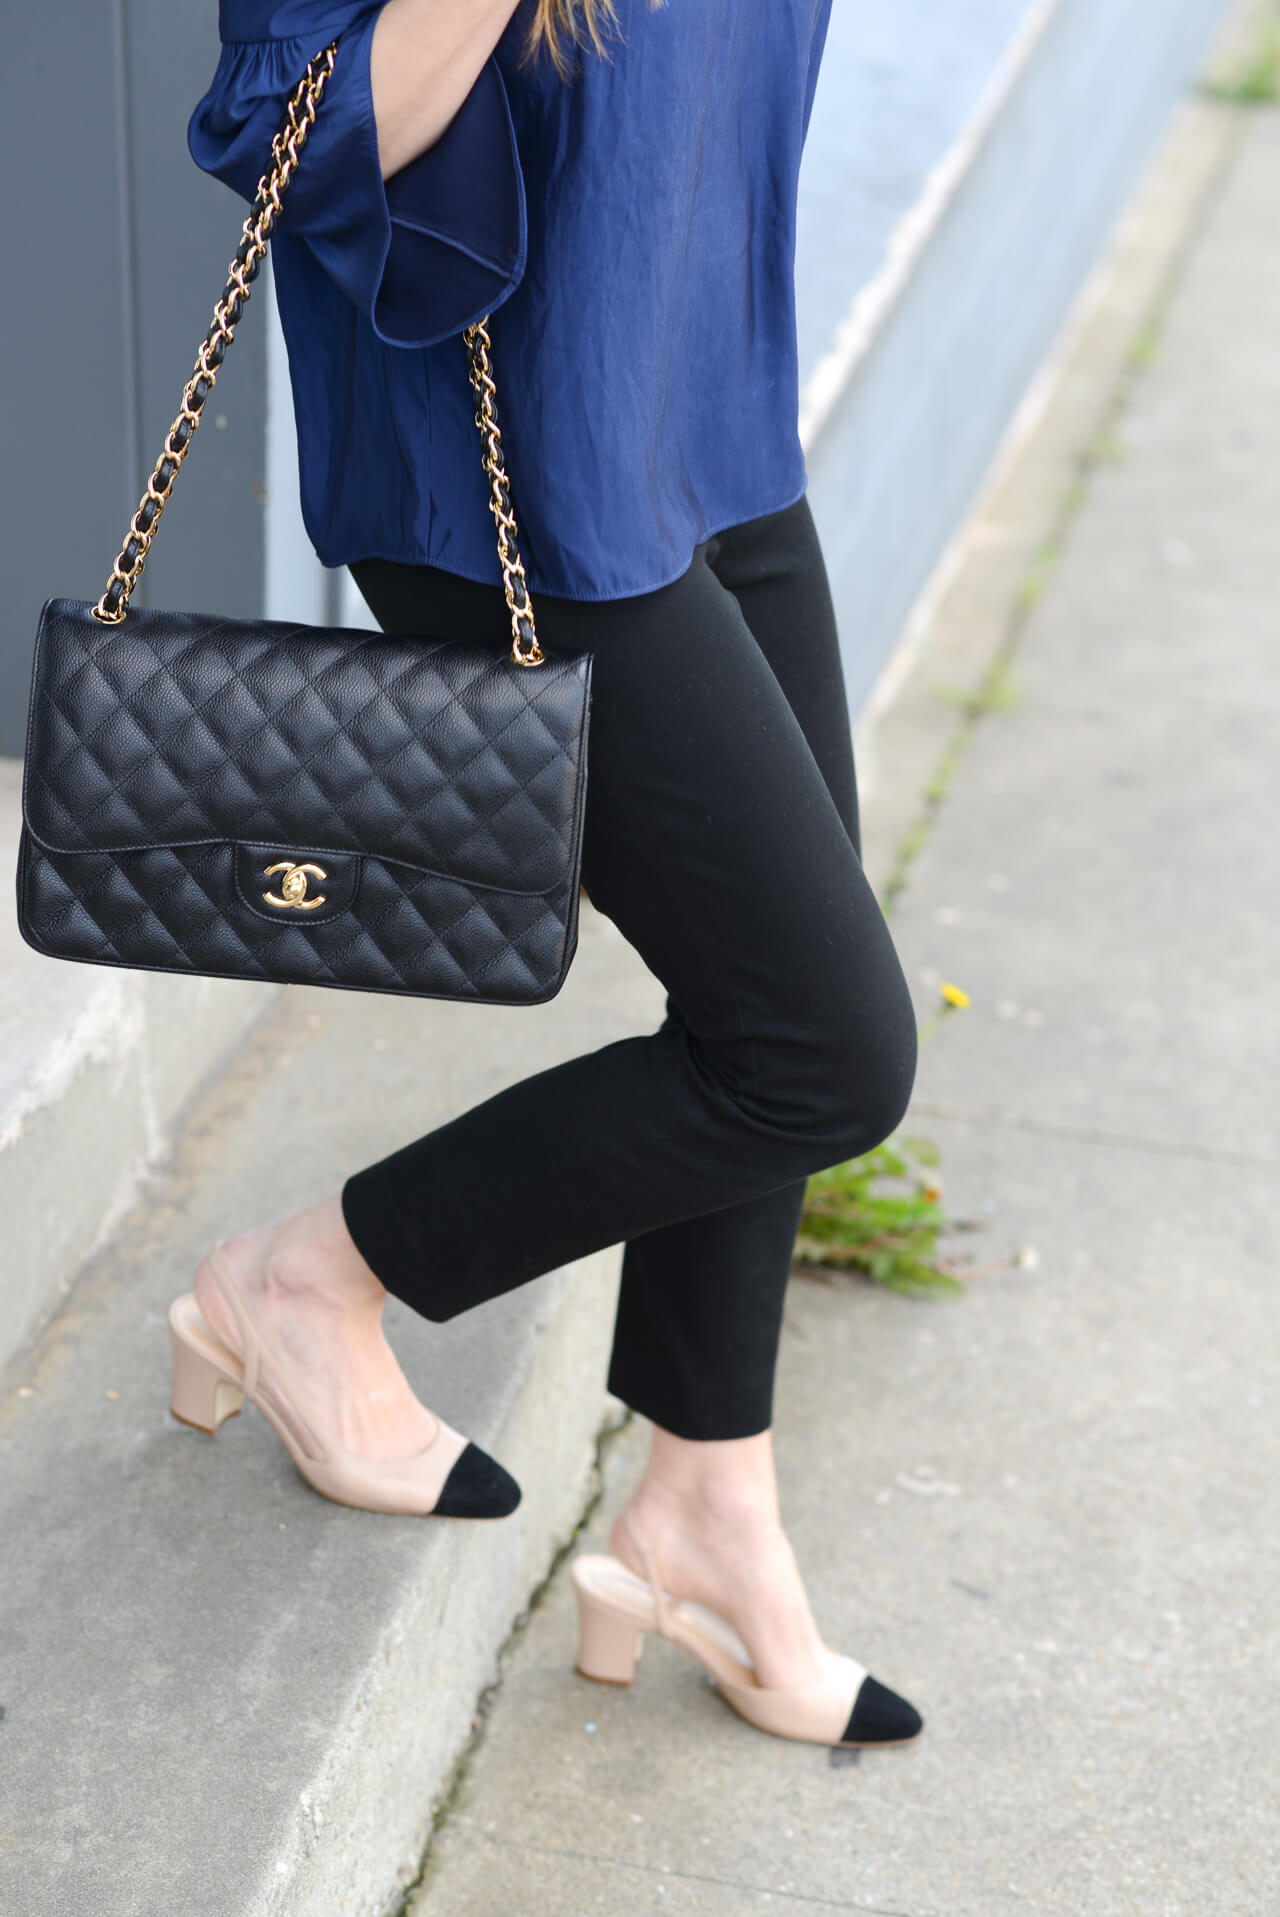 classic chanel bag with two-tone heels